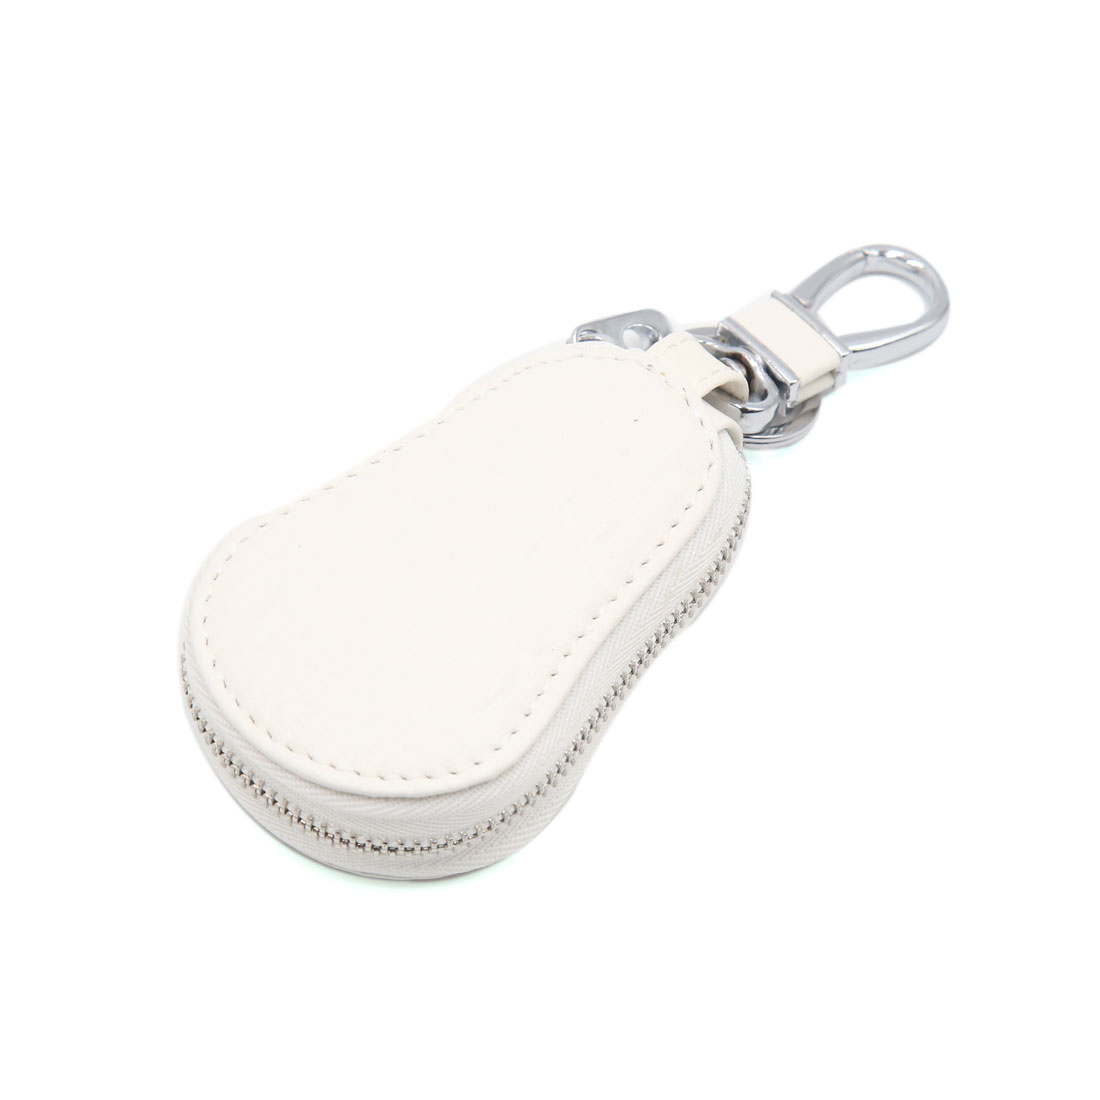 White Faux Leather Gourd Type Smart Chain Coin Holder Zipper Bag for Auto Remote Key